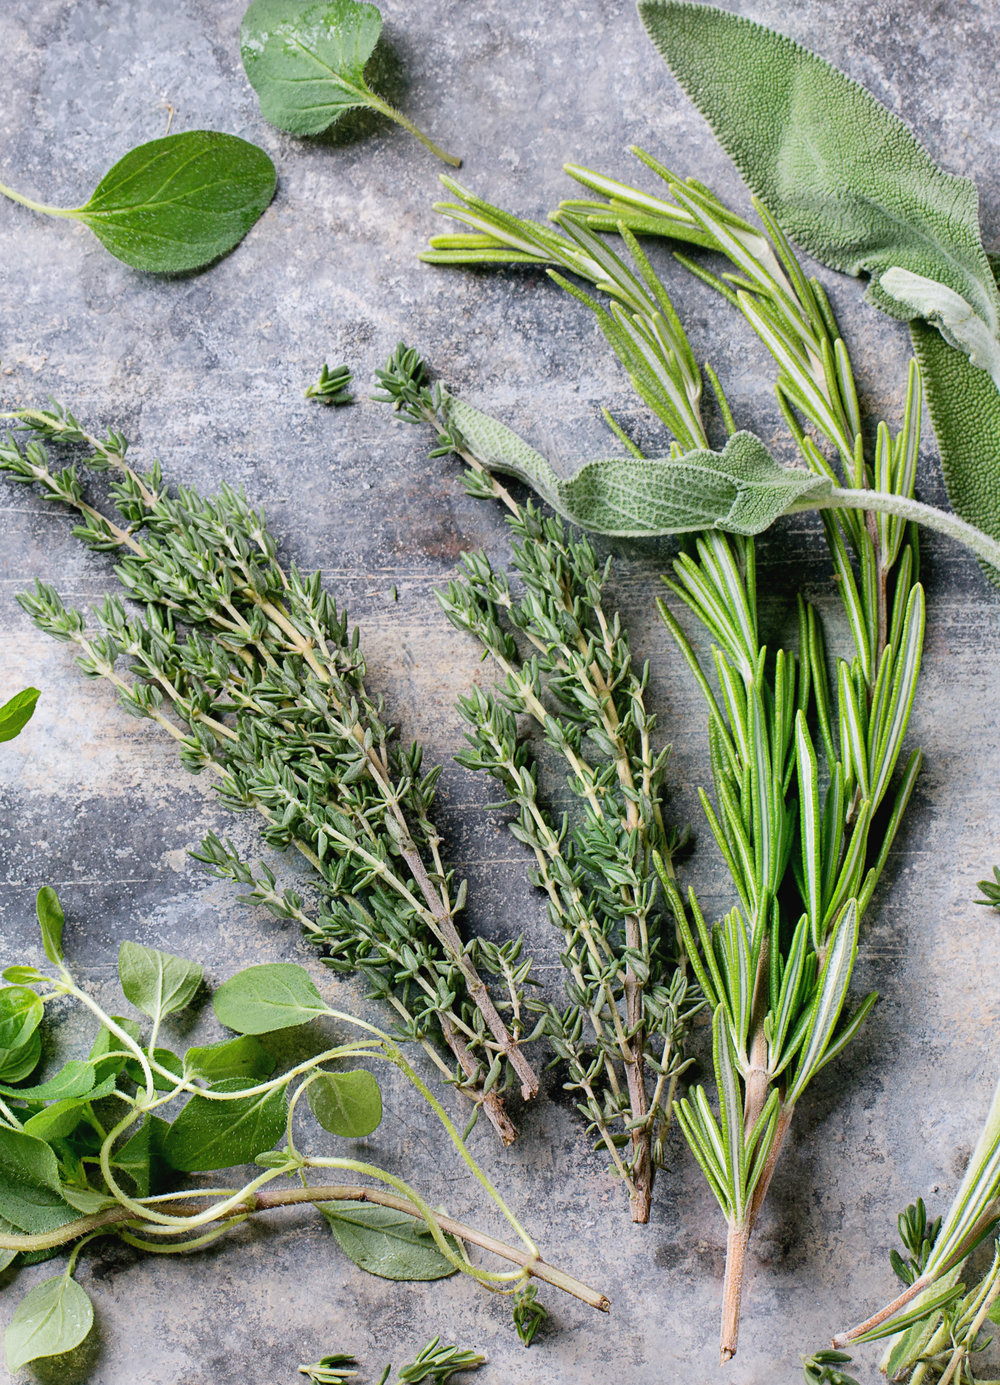 Savory Brine - Pick up fresh herbs from your Co+op and mix with pantry basics to create a rich and savory brine for a delightfully aromatic infusion.2 cups salt3-4 sprigs fresh thyme, crushed3-4 sprigs fresh oregano, crushed or roughly chopped2-3 sprigs fresh rosemary, crushed